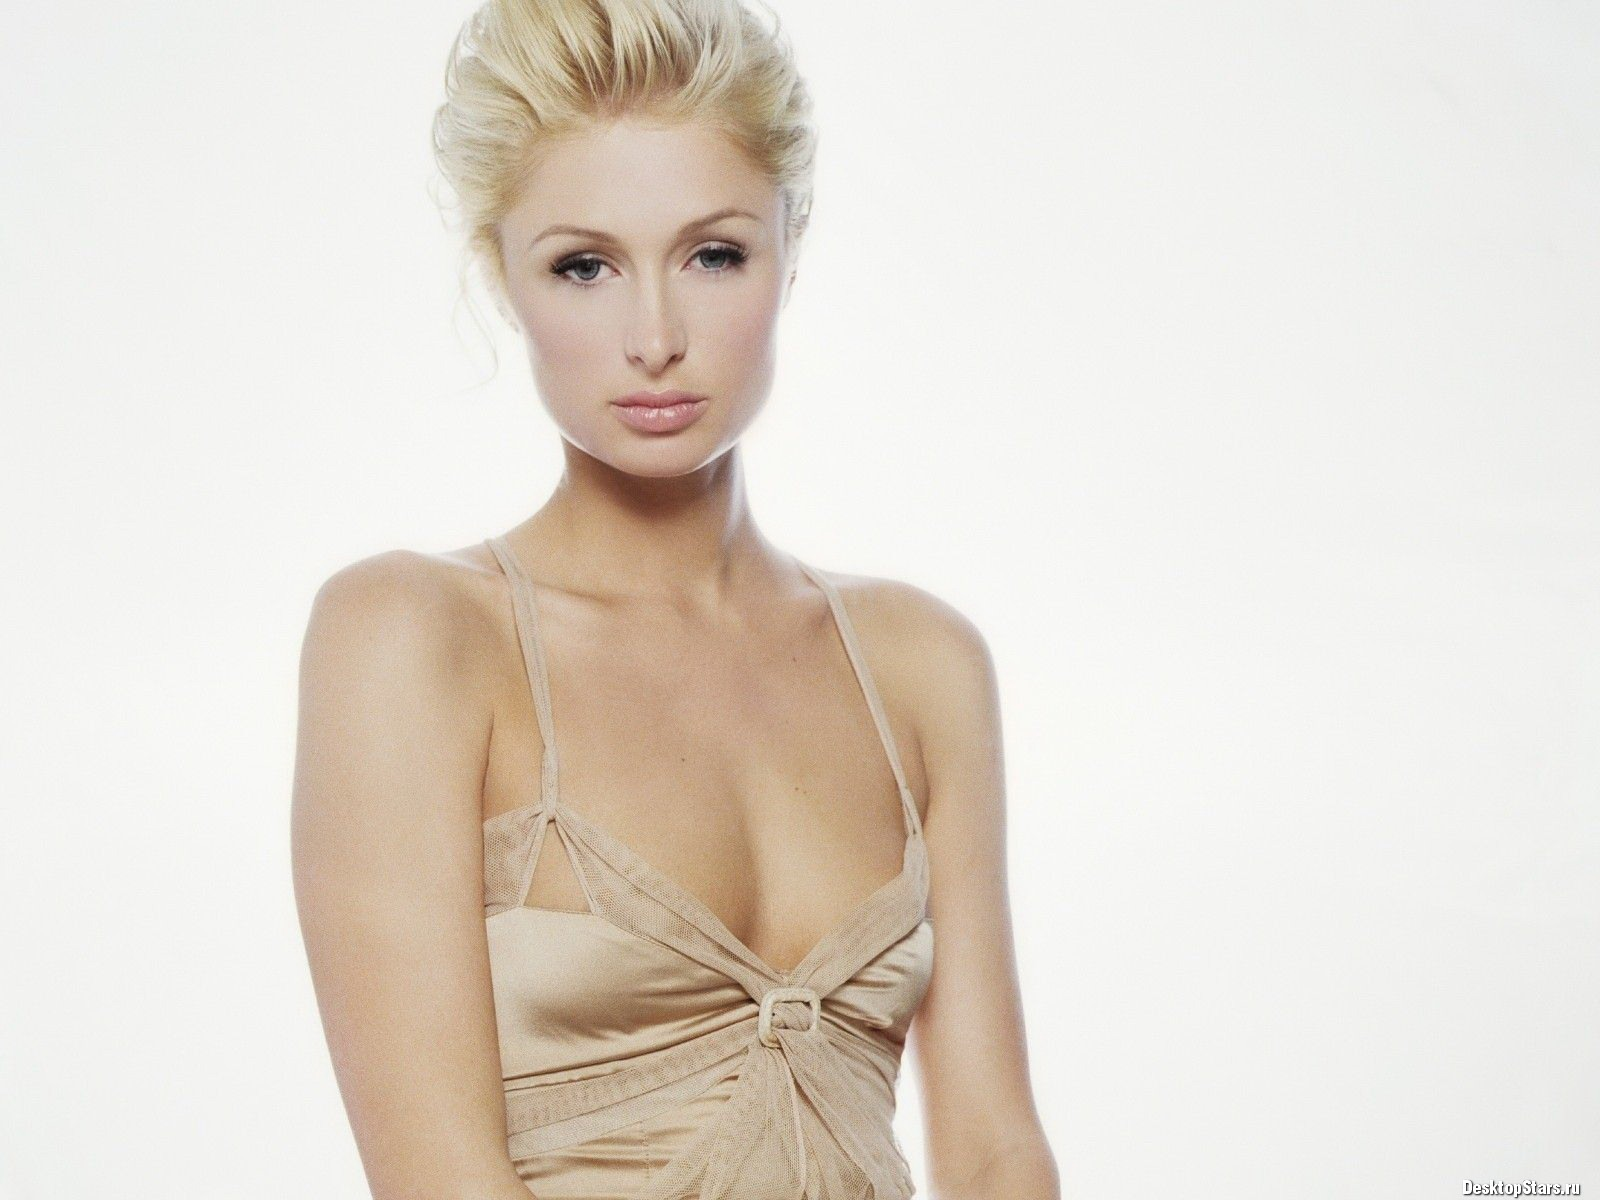 Paris Hilton #043 - 1600x1200 Wallpapers Pictures Photos Images